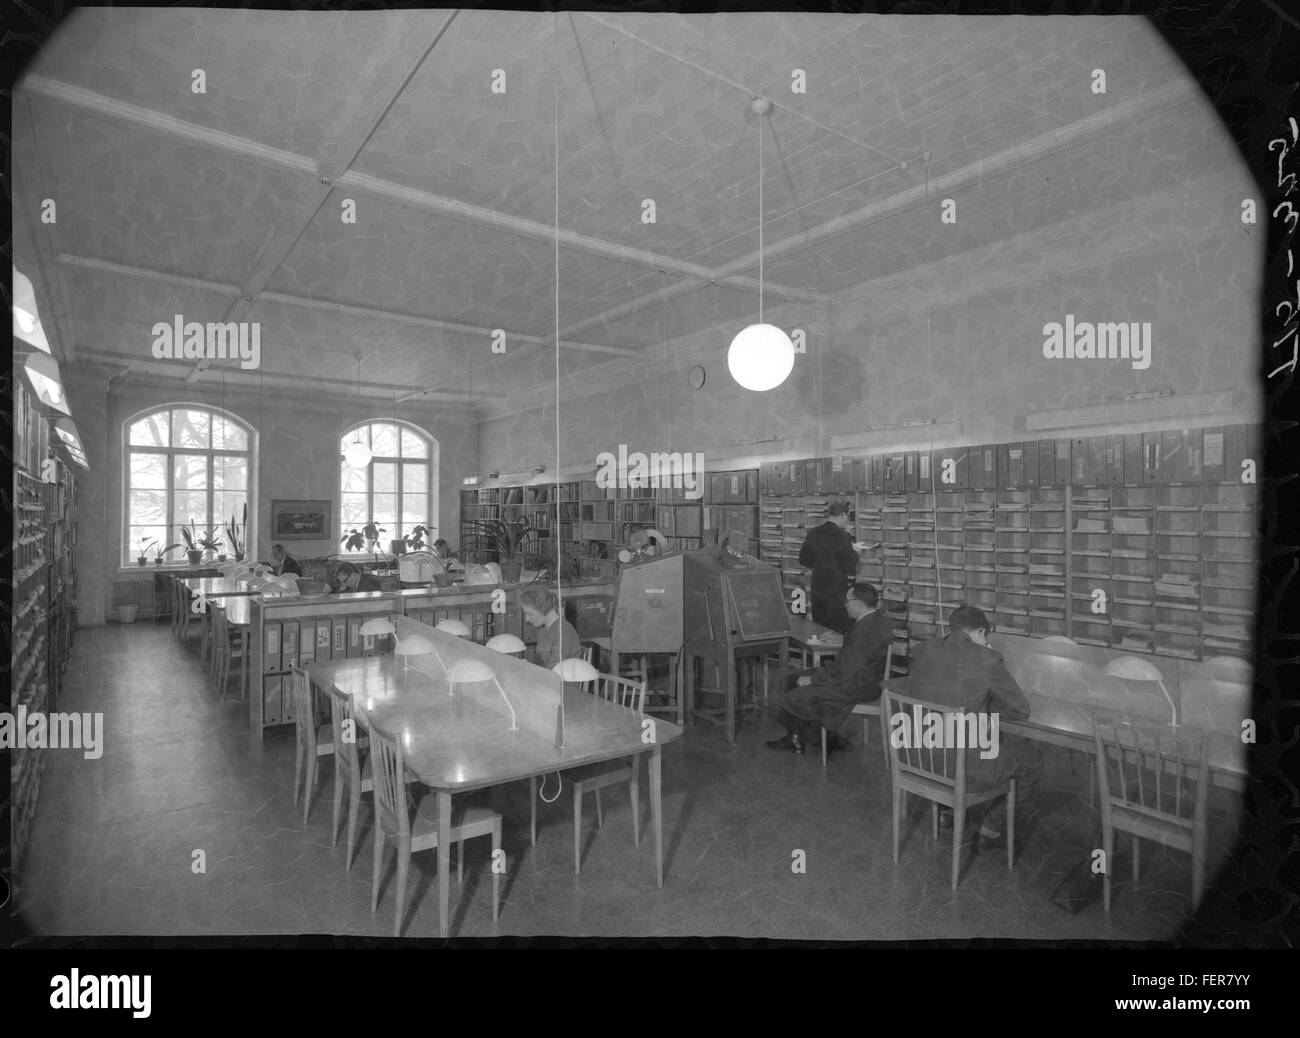 University of Technology Library in 1950's - Stock Image